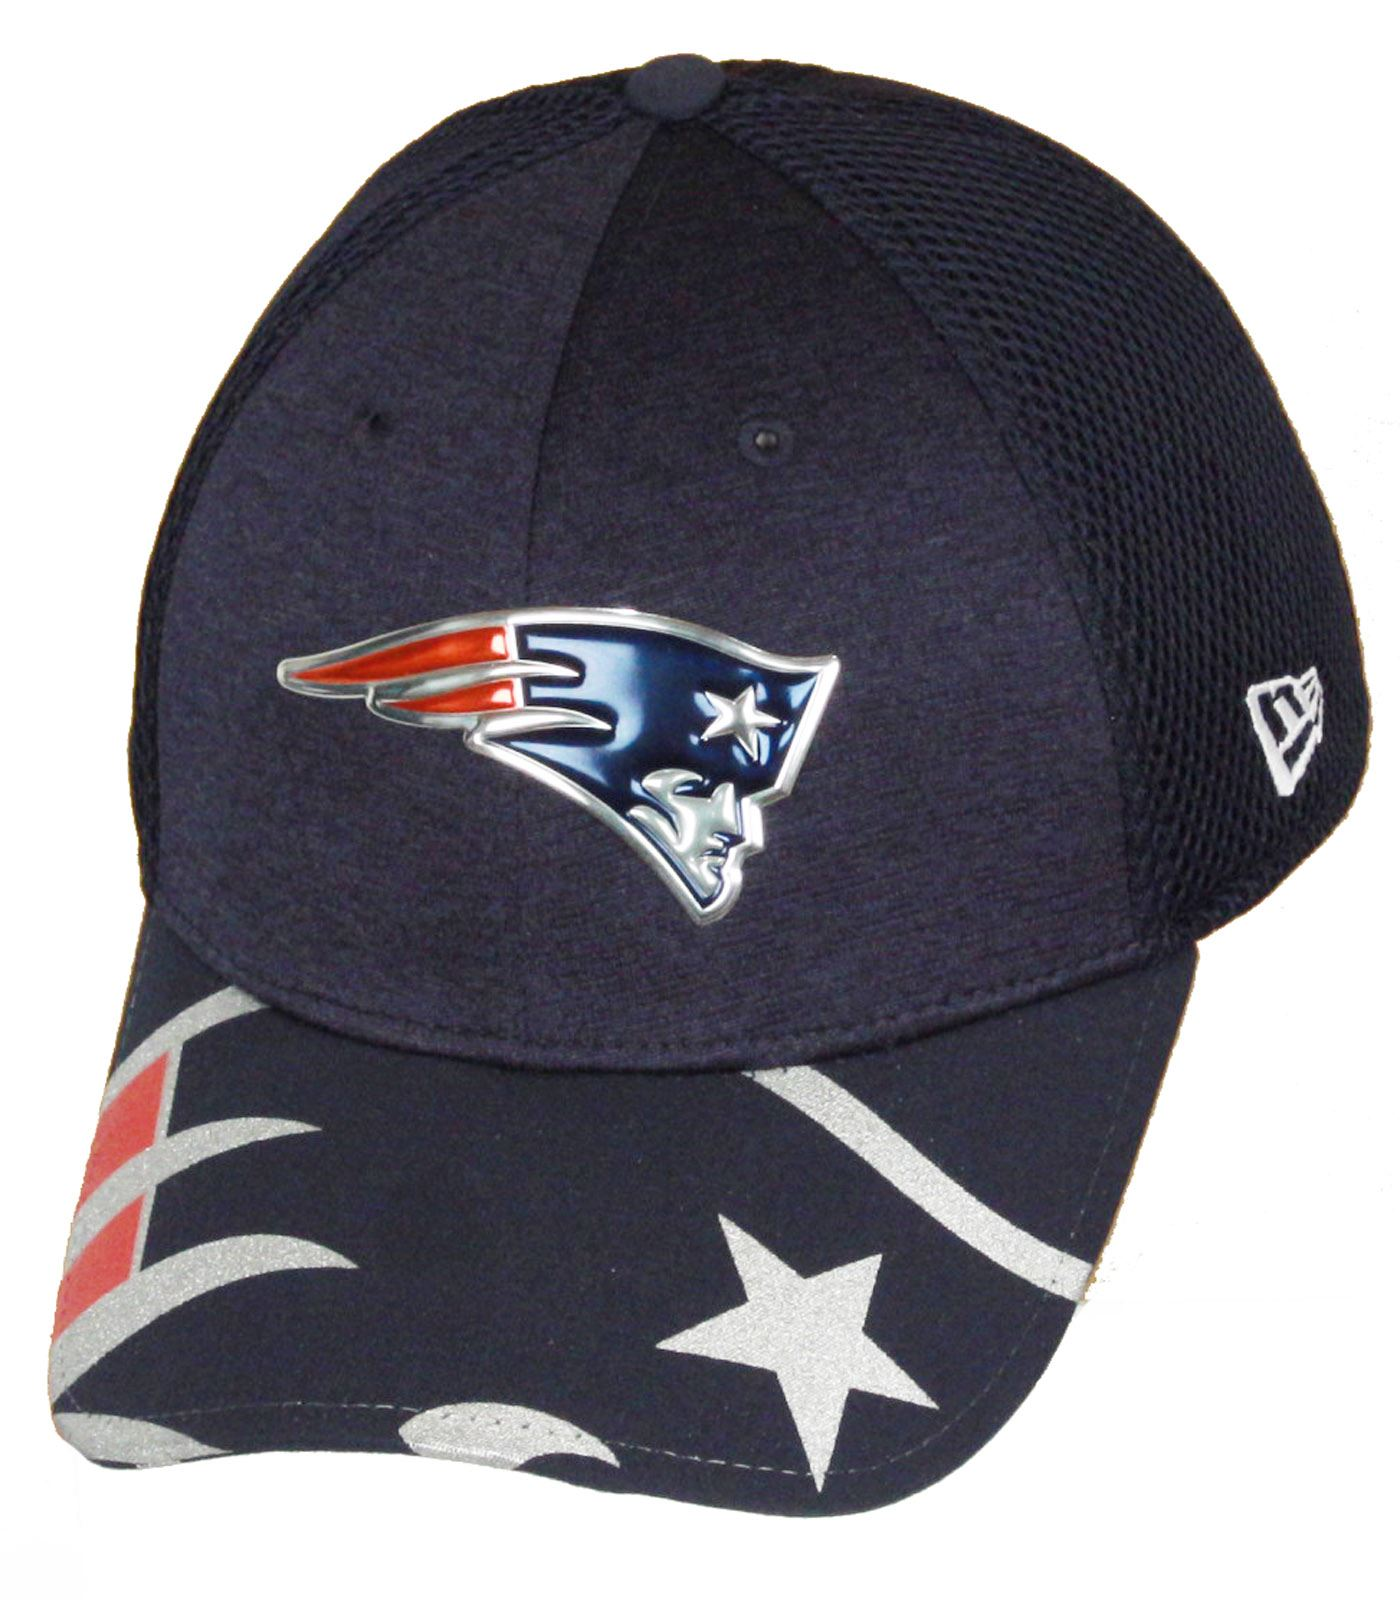 0bd79843c13 ... good new era nfl17 39thirty onstg curve cap new 8a3ad 79add